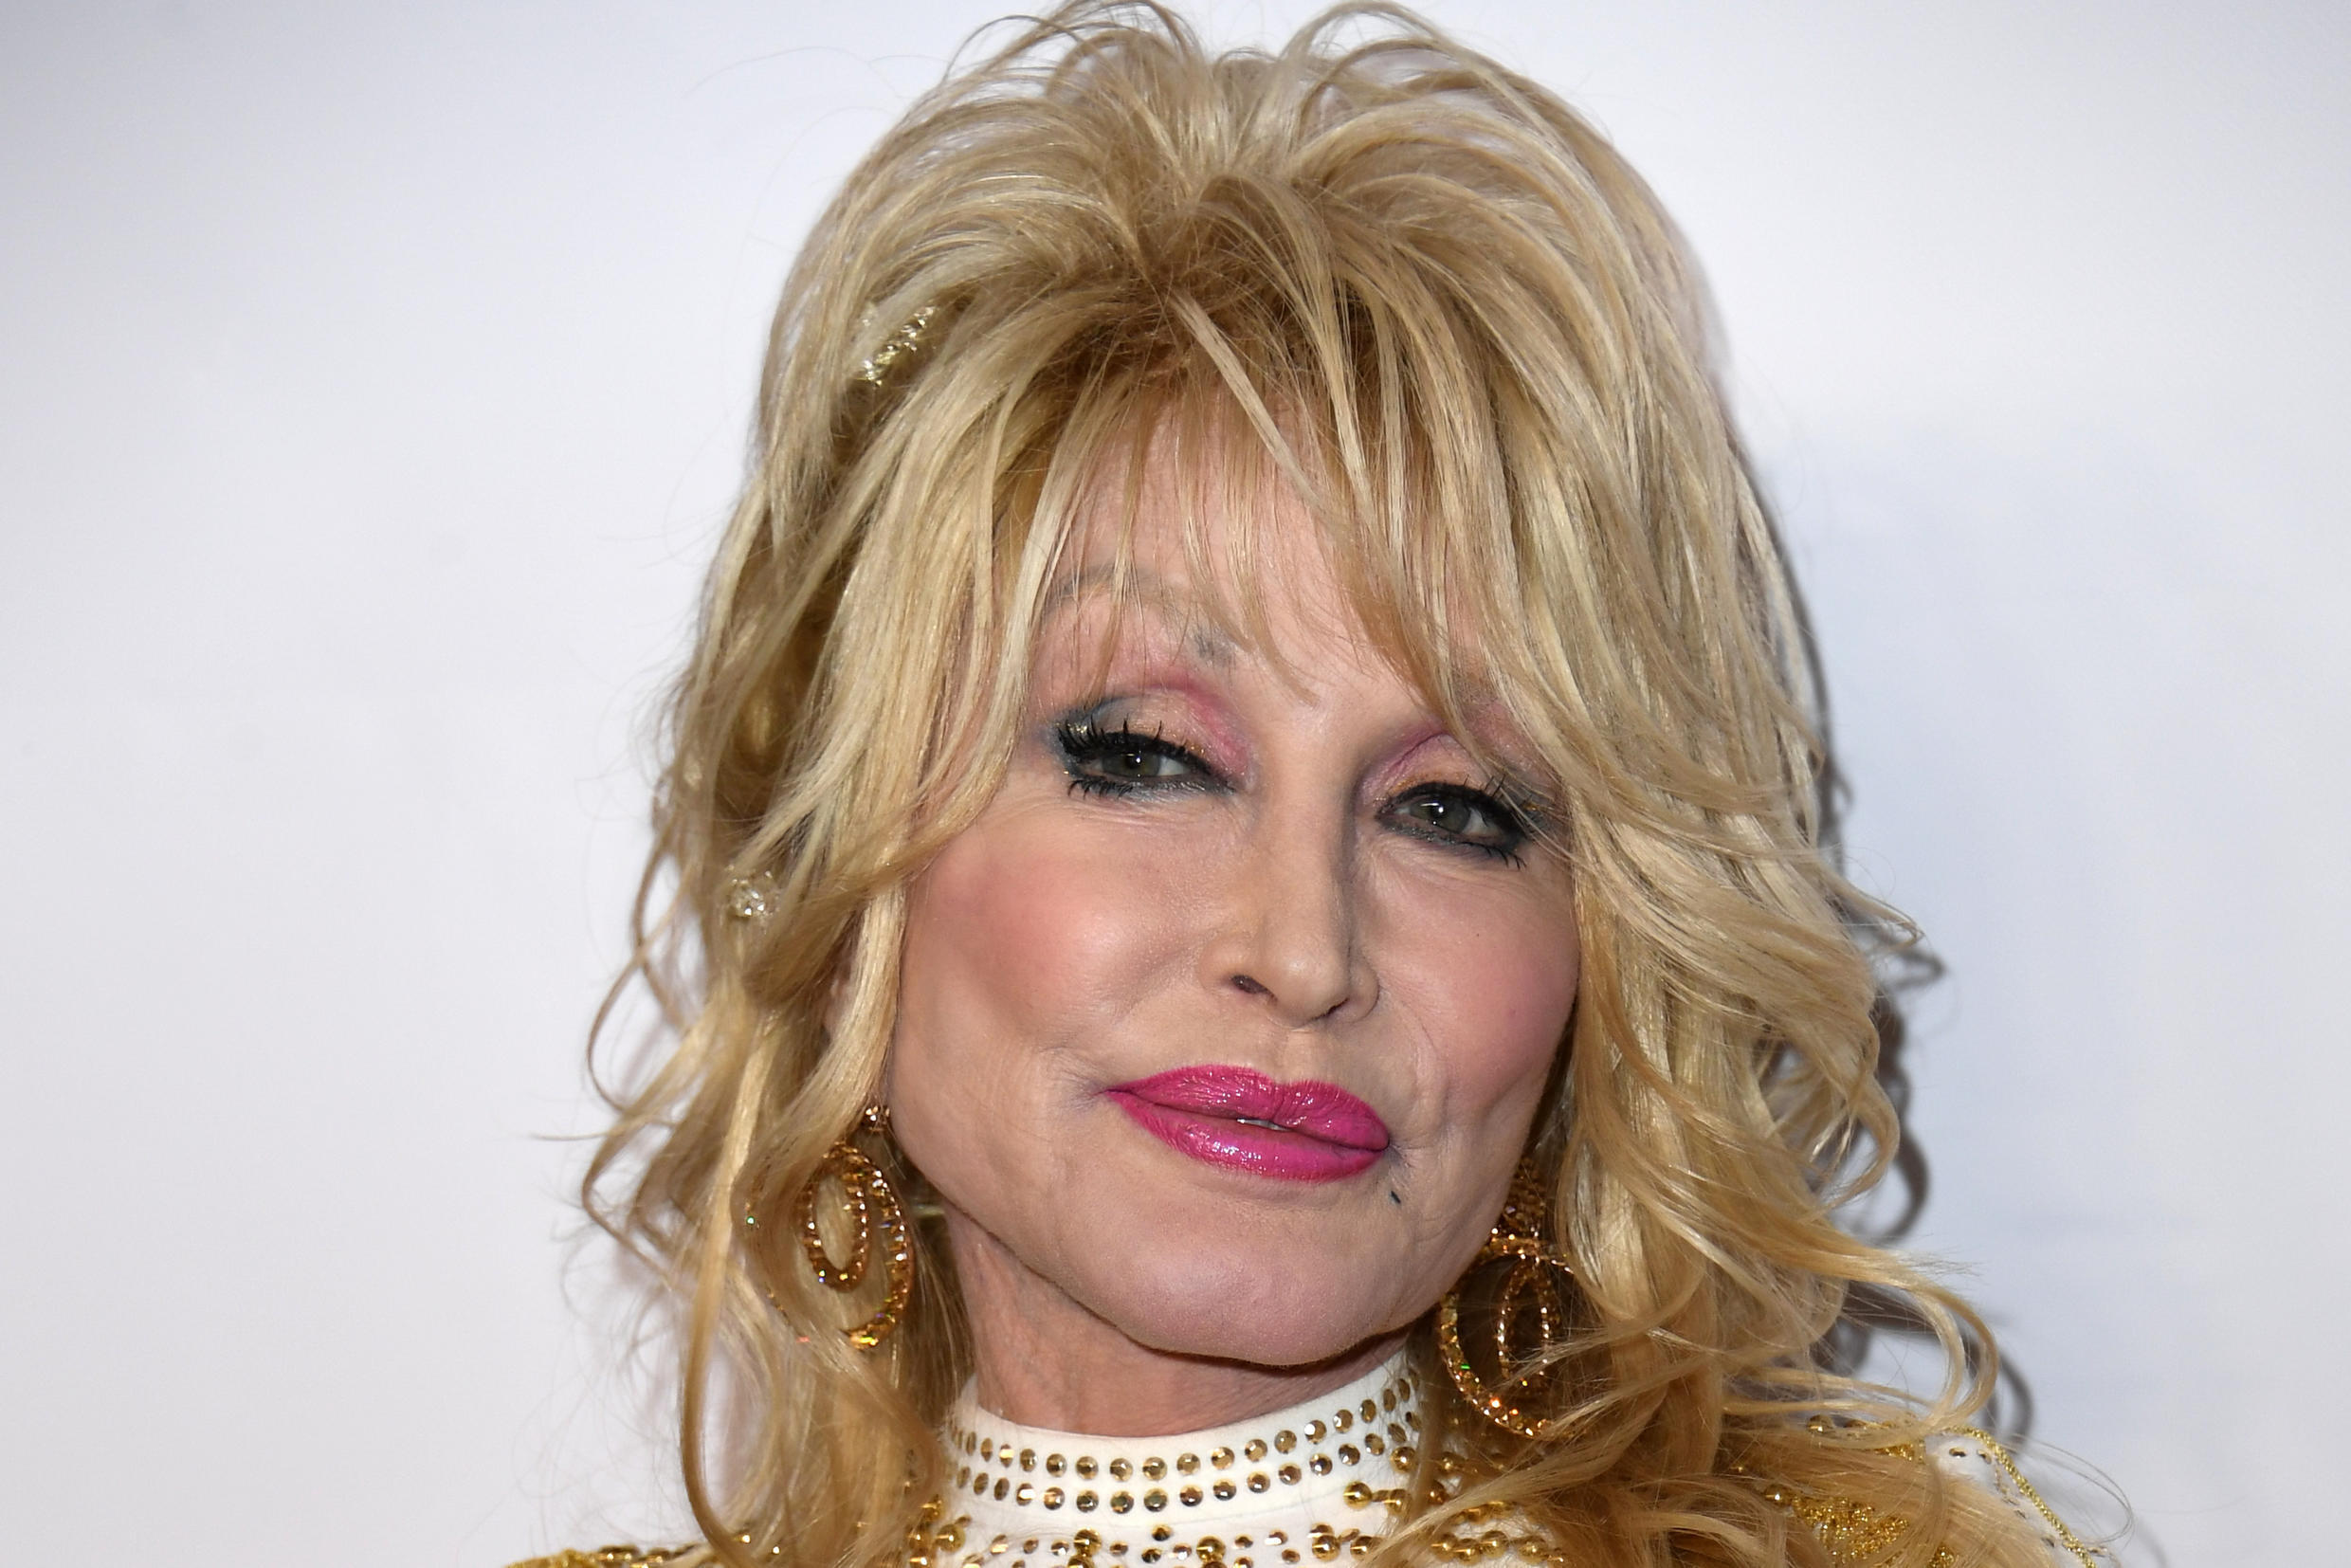 Dolly Parton asked lawmakers from her home state Tennessee not to put up a statue of her -- for now